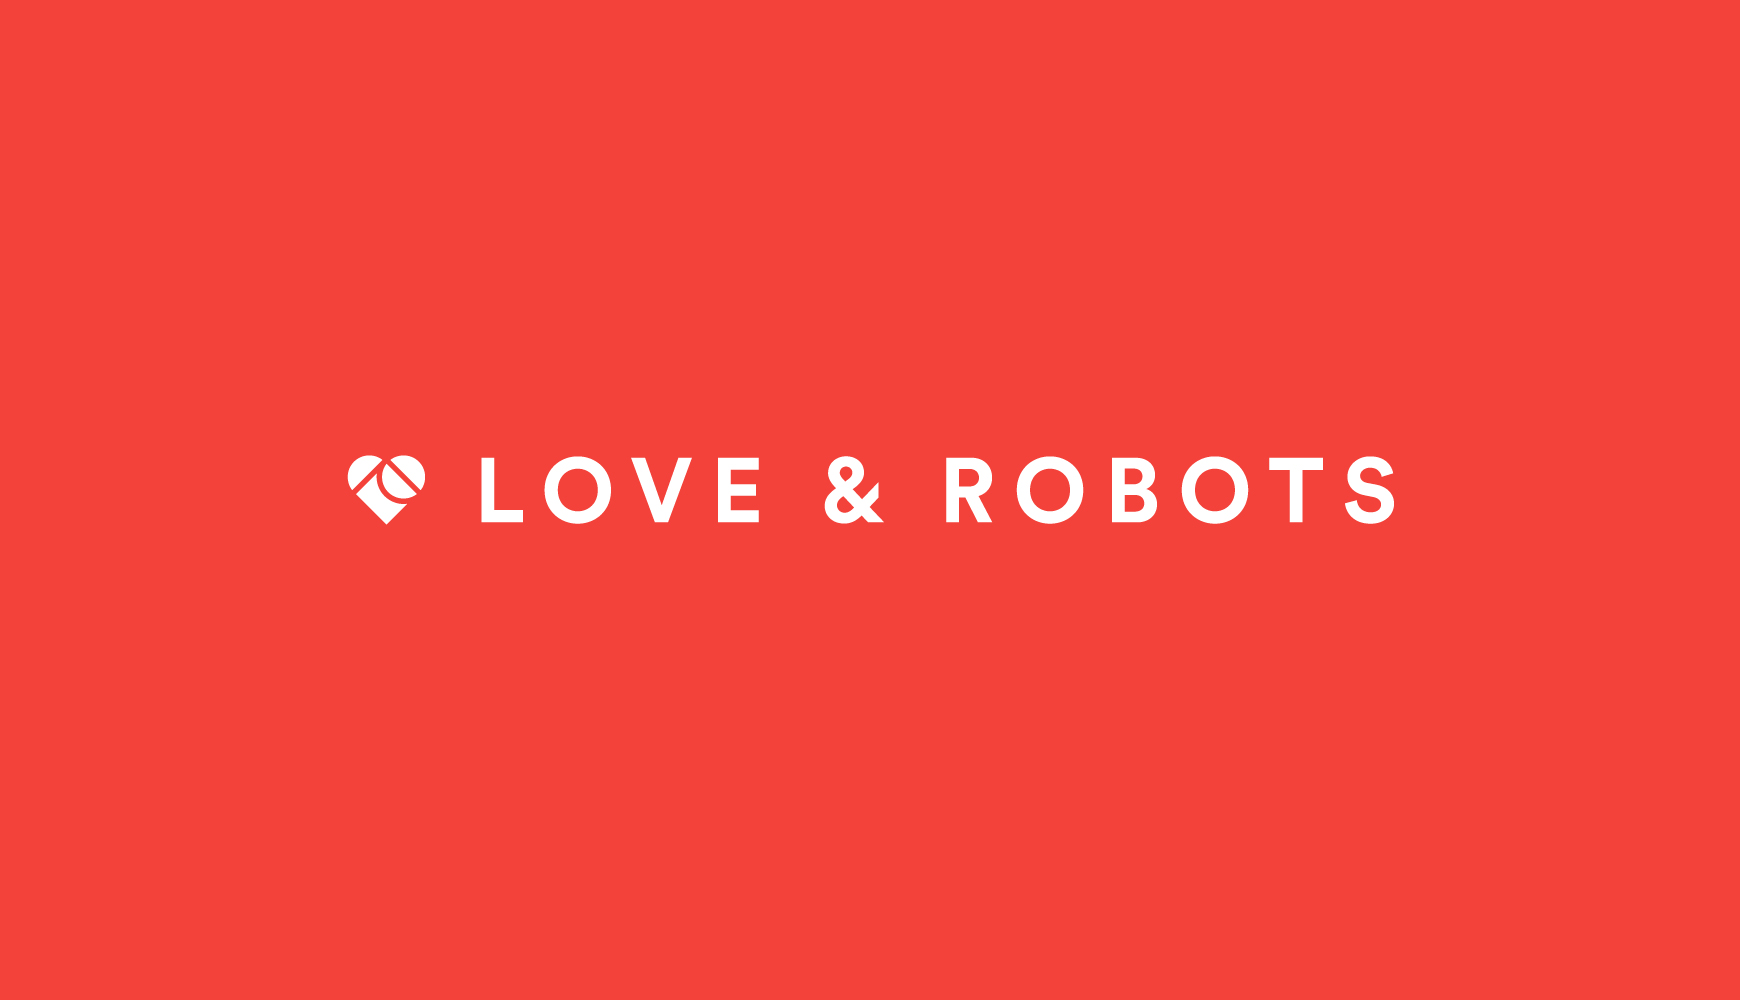 Love & Robots Large Image One